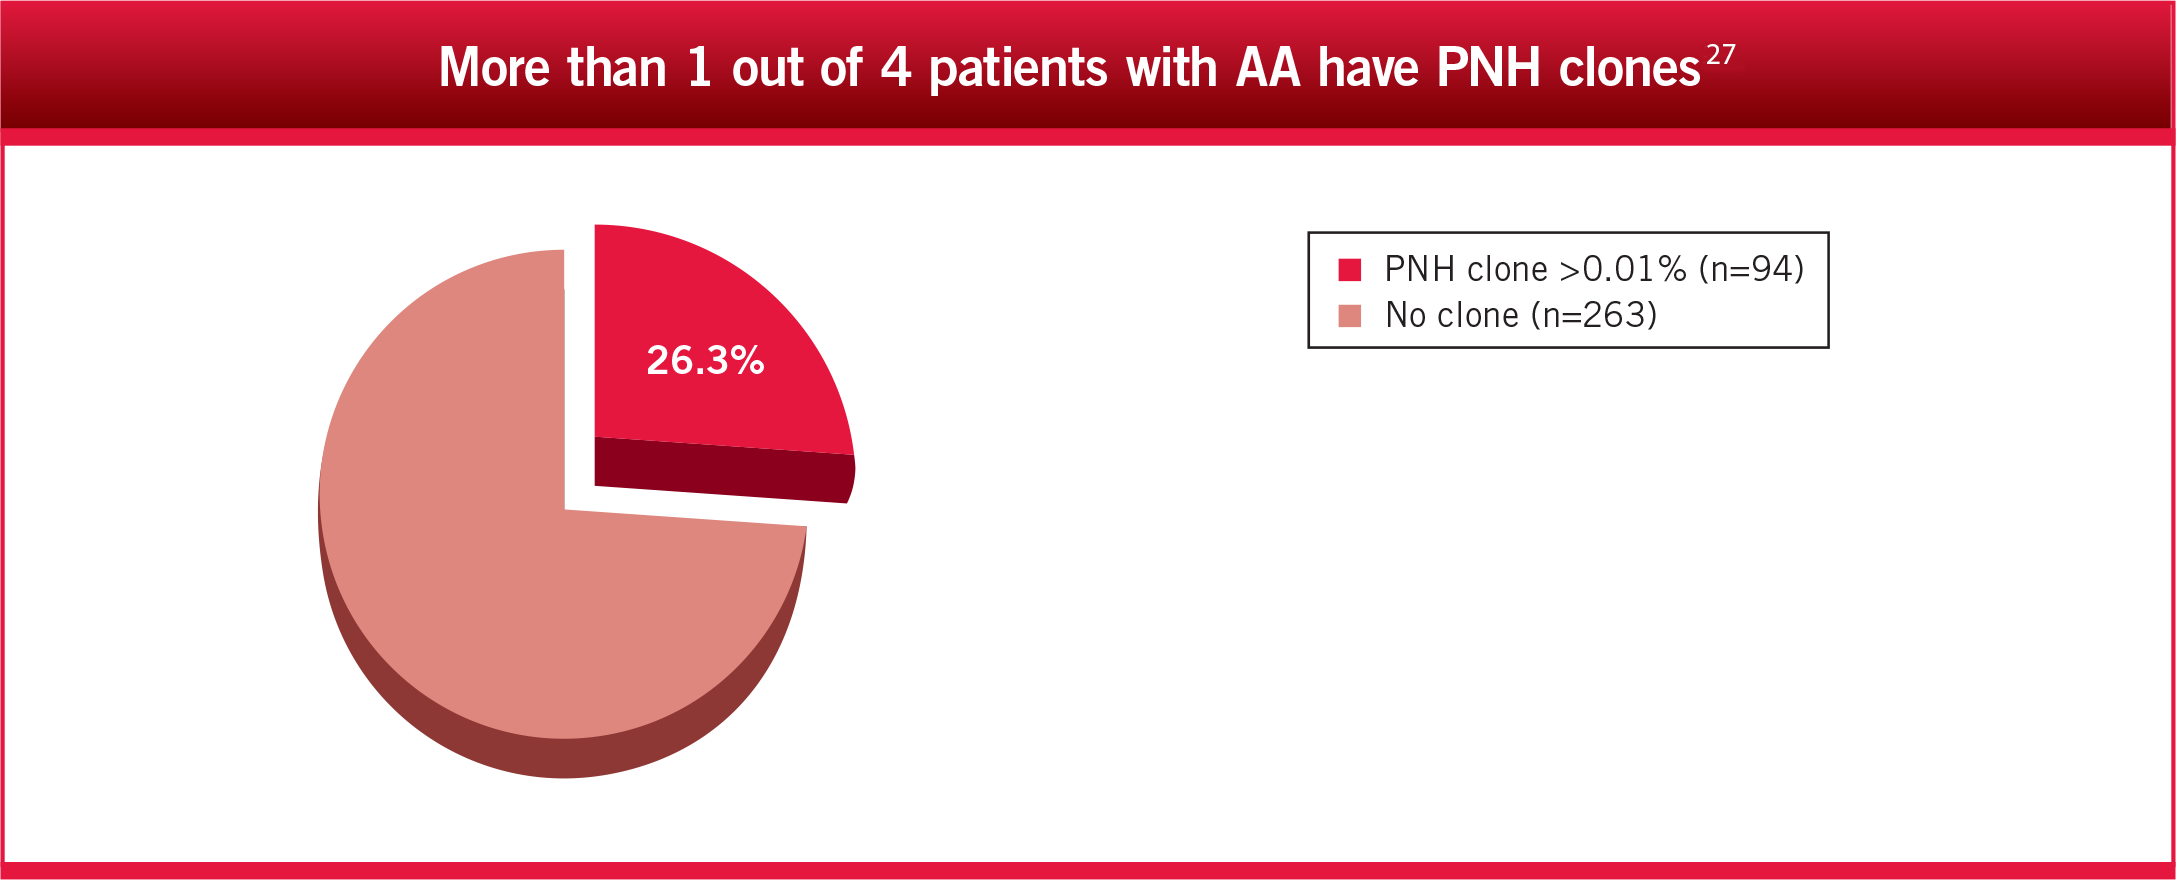 More than 1 out of 18 patients with MDS have PNH clones3